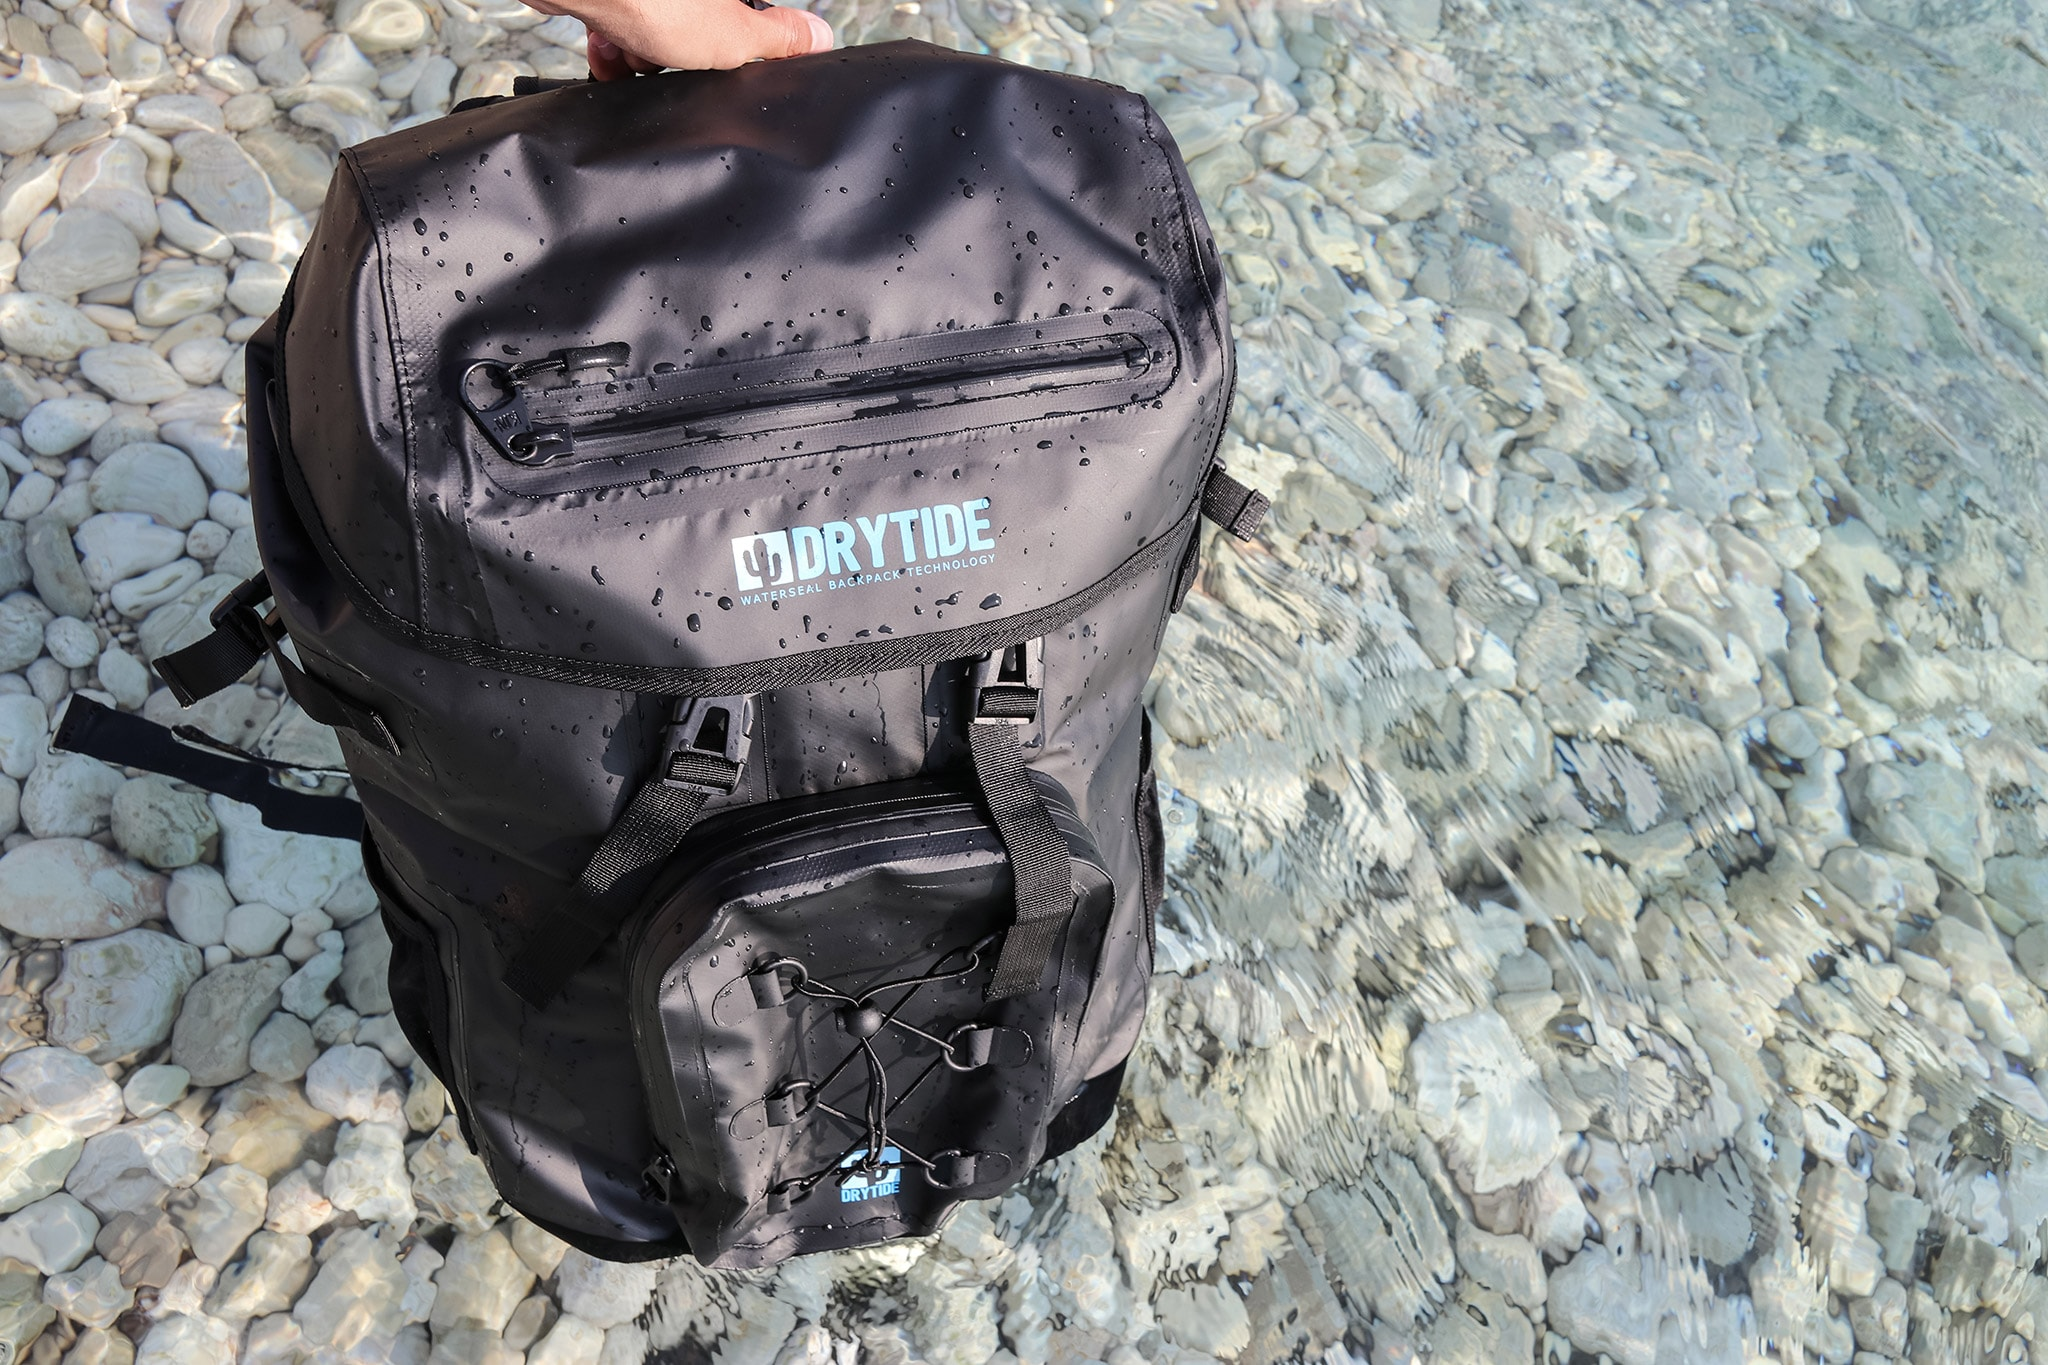 Waterproof backpack floating in the sea